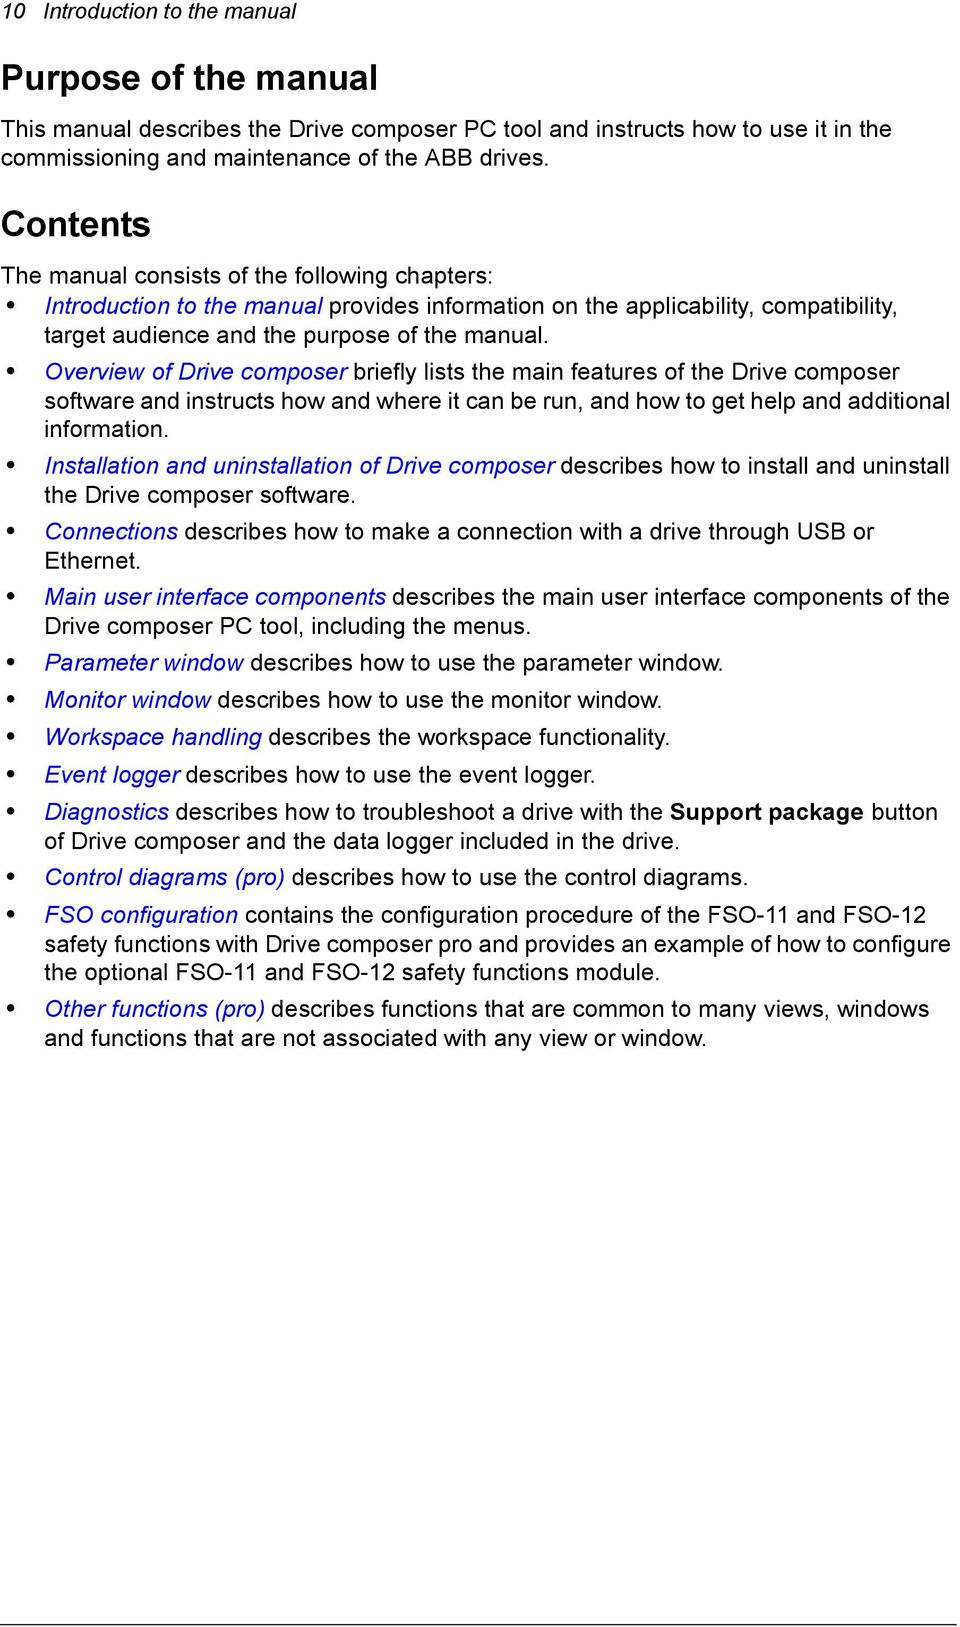 Overview of Drive composer briefly lists the main features of the Drive composer software and instructs how and where it can be run, and how to get help and additional information.